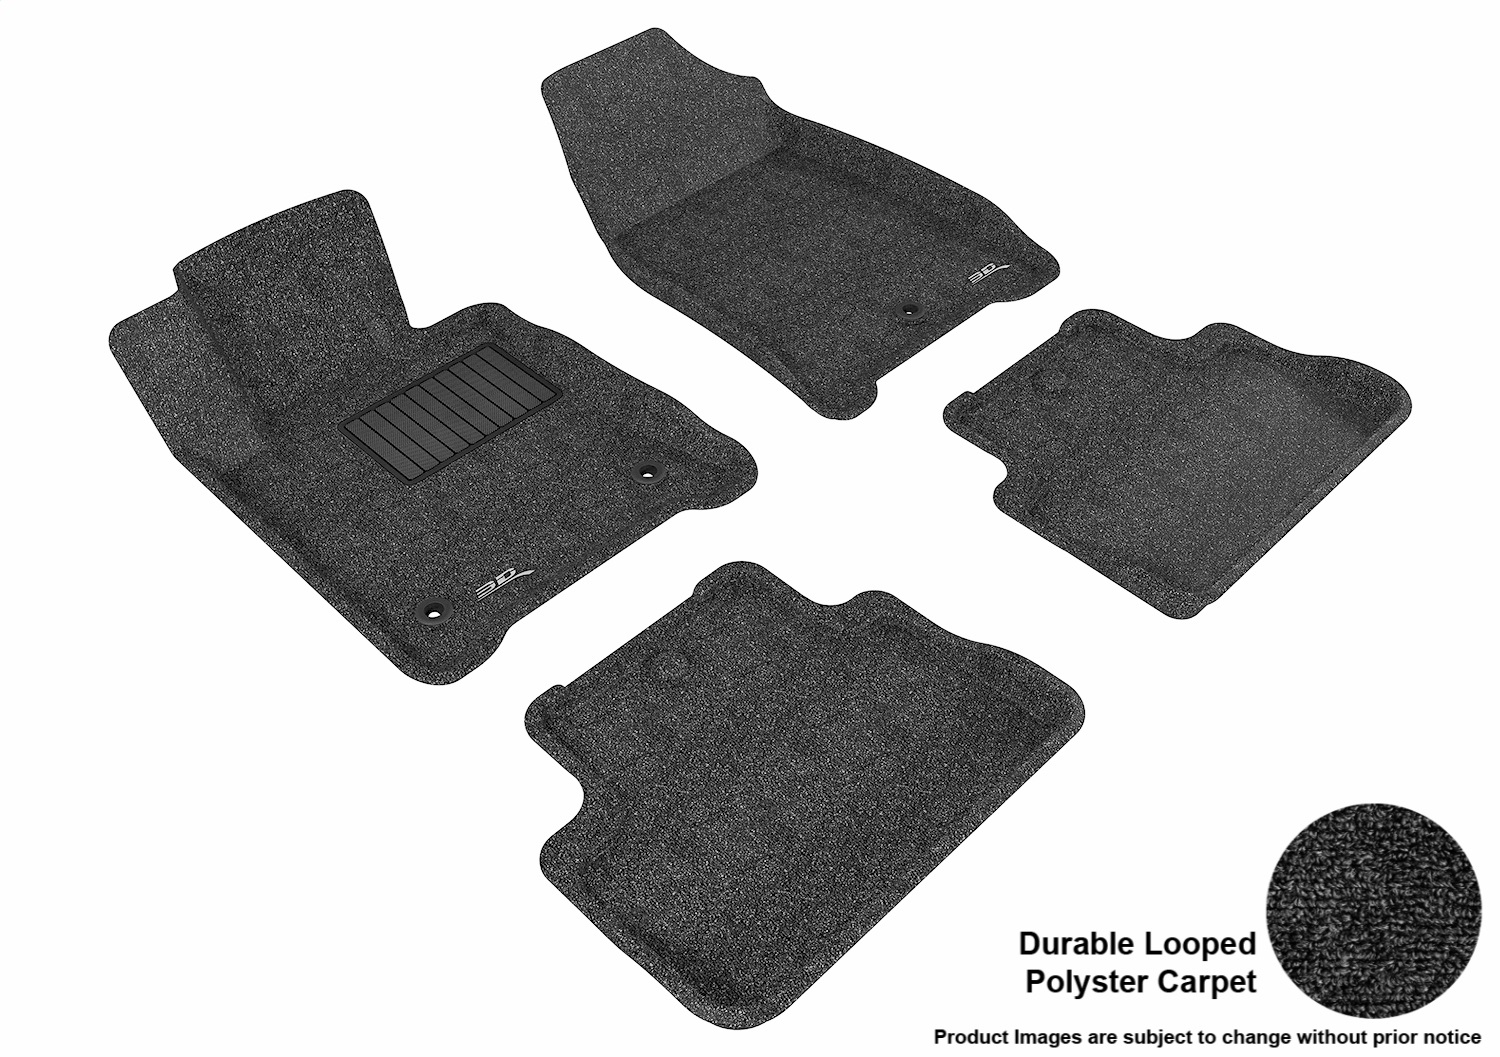 L1AC00302209 3D MAXpider Floor Mat Set; Black; Durable Looped Poly Carpet; Front and Rear